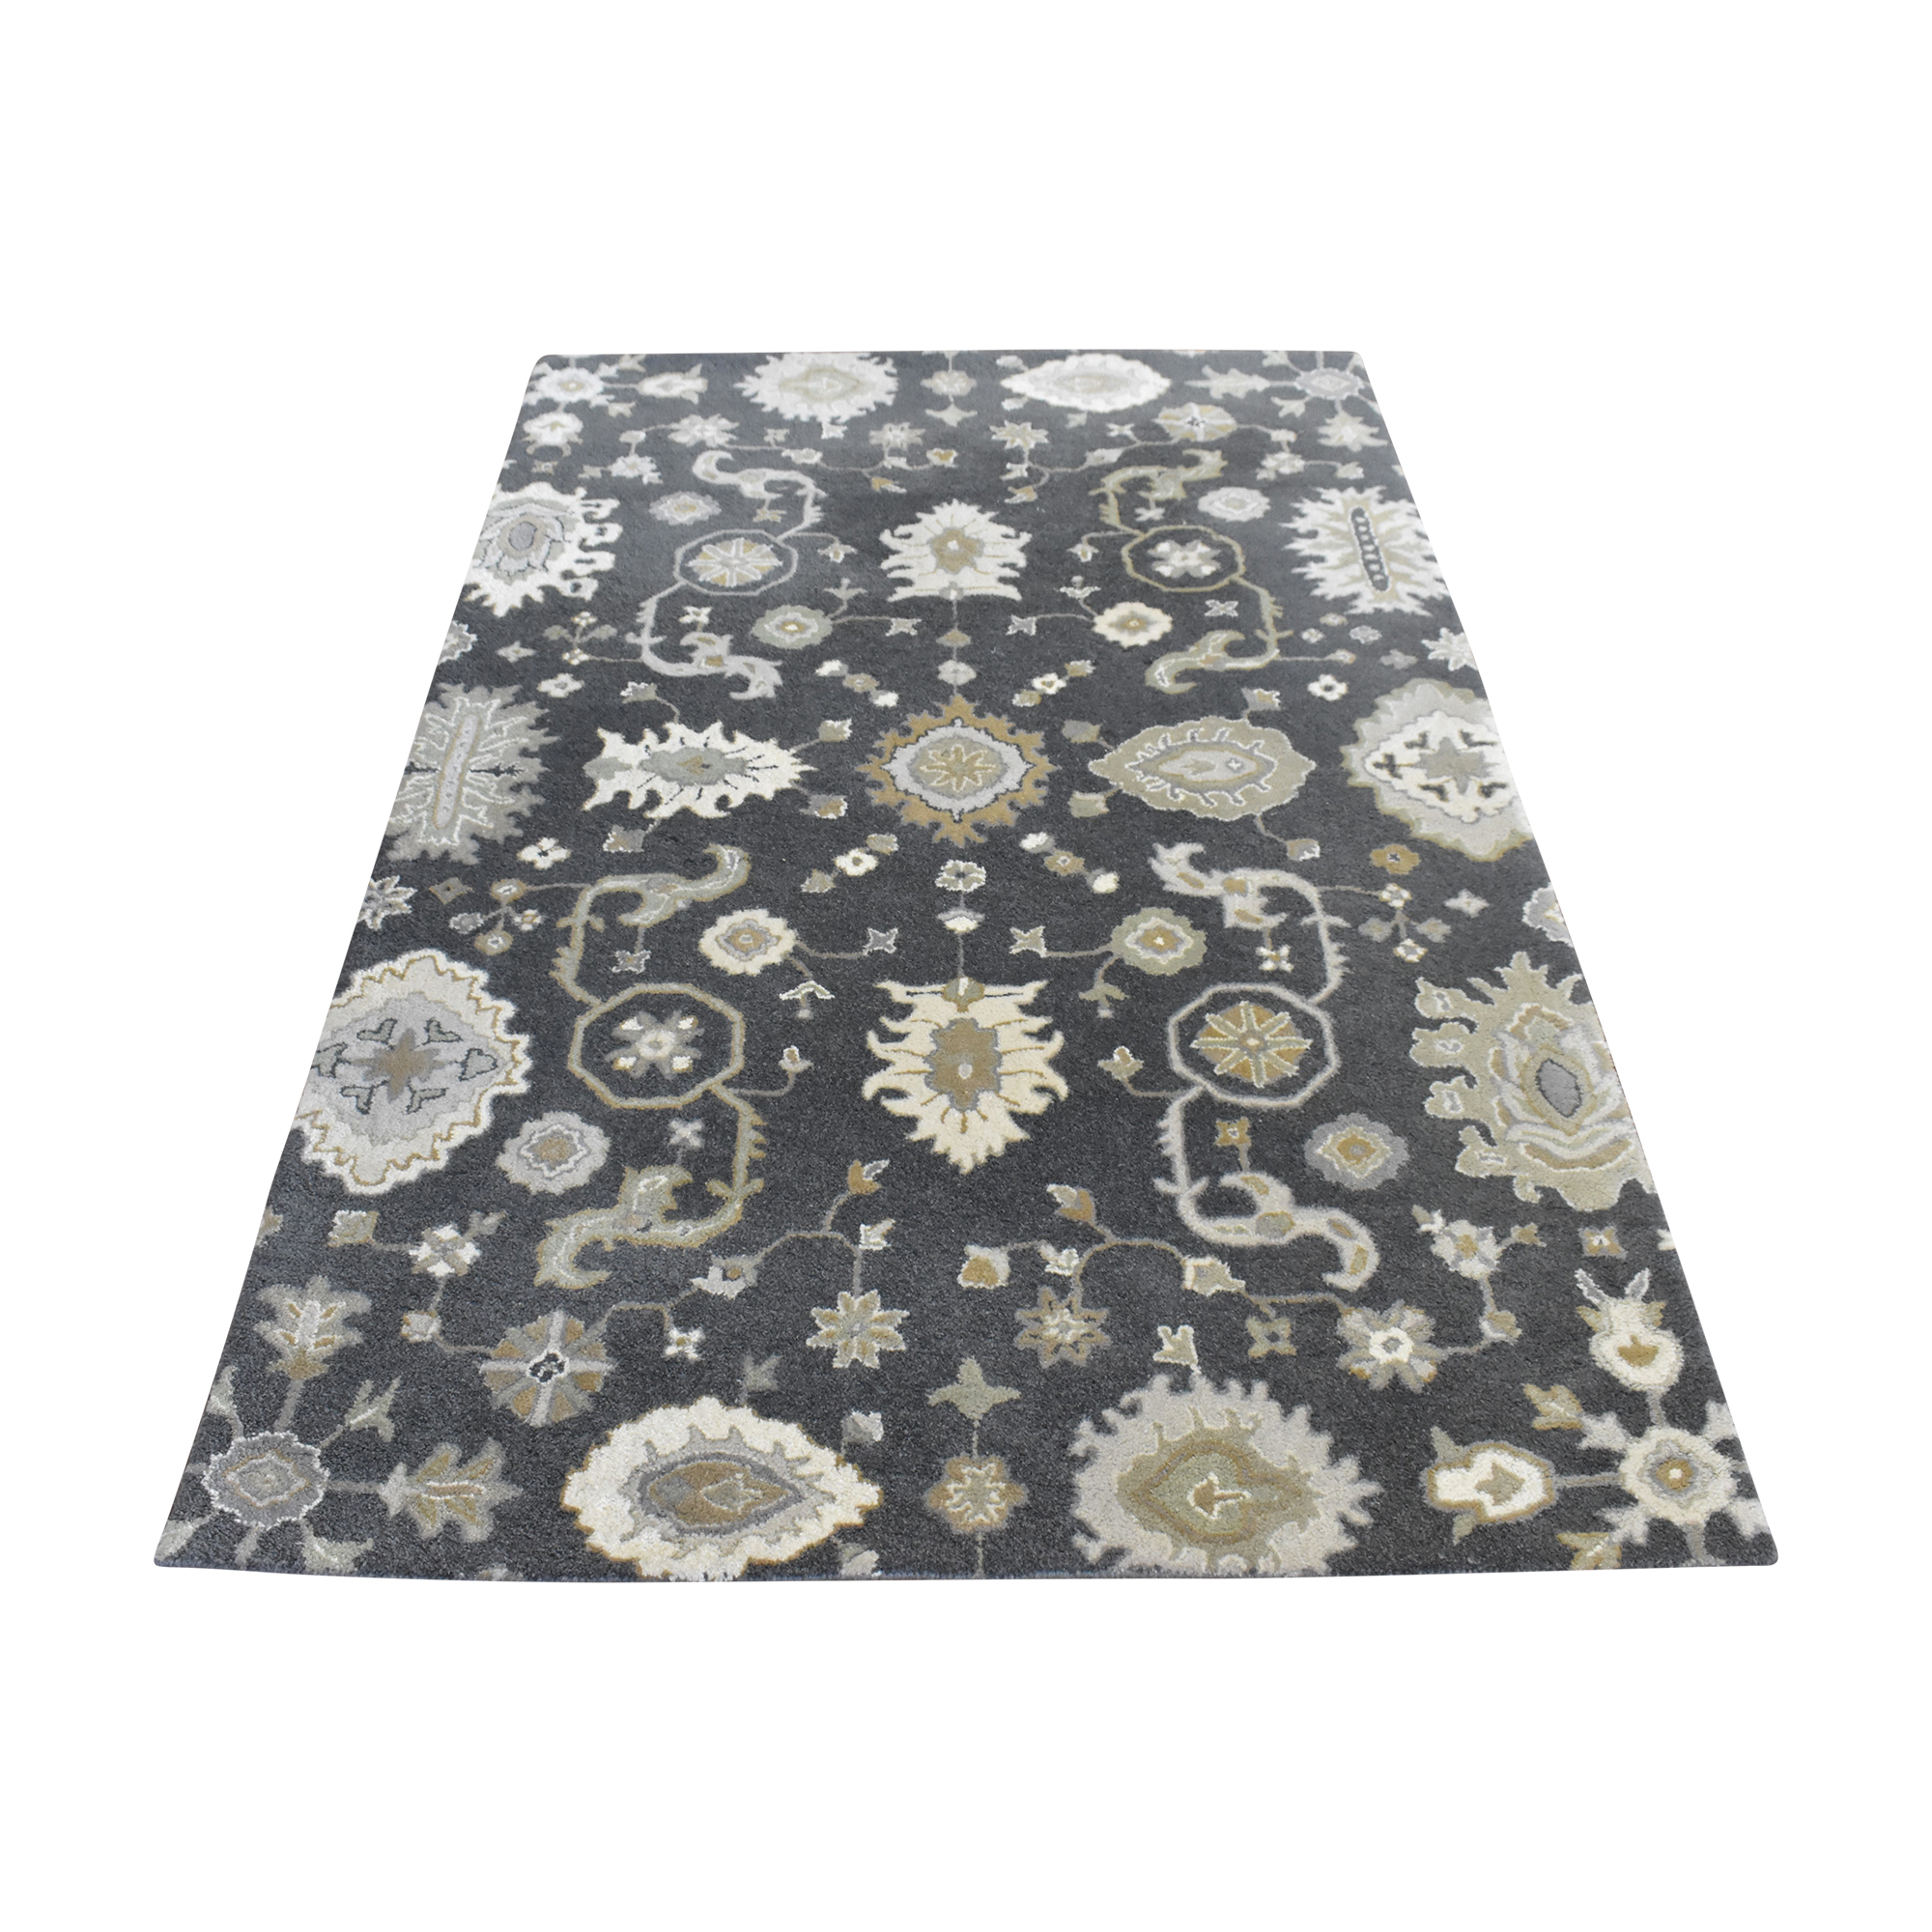 Crate & Barrel Crate & Barrel Juno Rug 5 x 8 Rugs